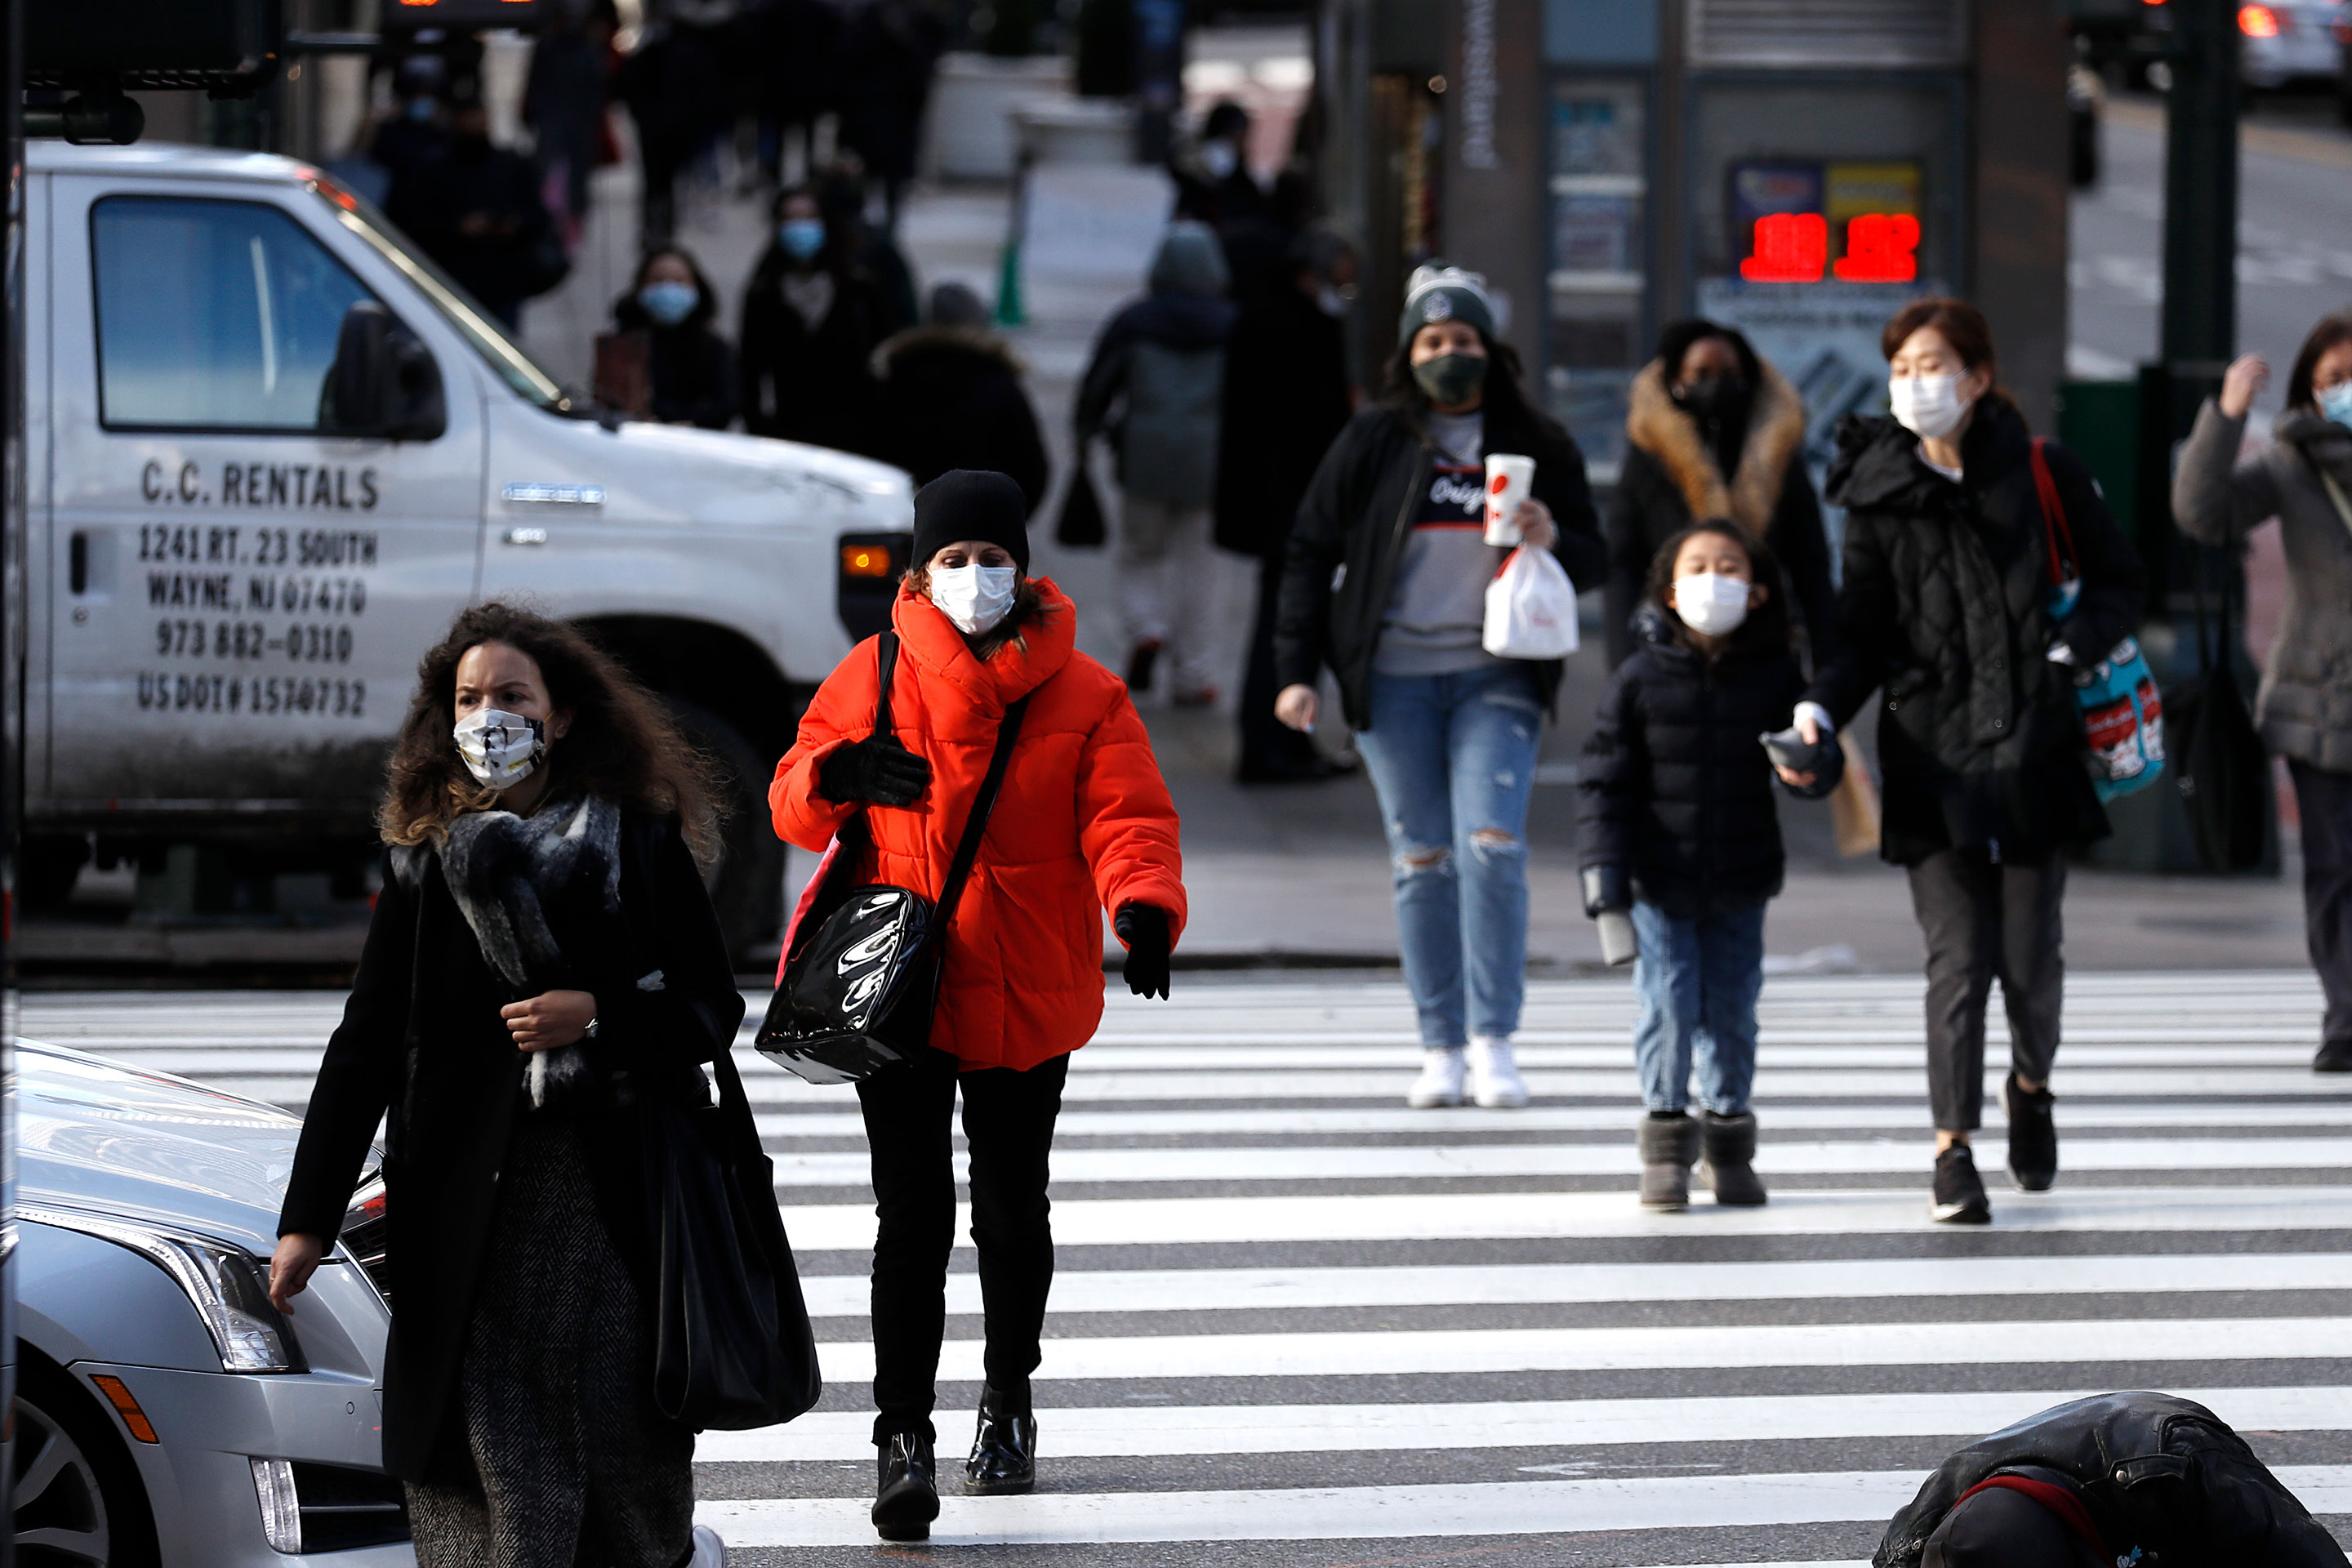 NEW YORK, NEW YORK - NOVEMBER 19: People wearing protective masks cross the street in Midtown on November 19, 2020 in New York City. The pandemic has caused long-term repercussions throughout the tourism and entertainment industries, including short-term and permanent closures of historic and iconic venues, and costing the city and businesses billions in revenue. (Photo by John Lamparski/Getty Images)